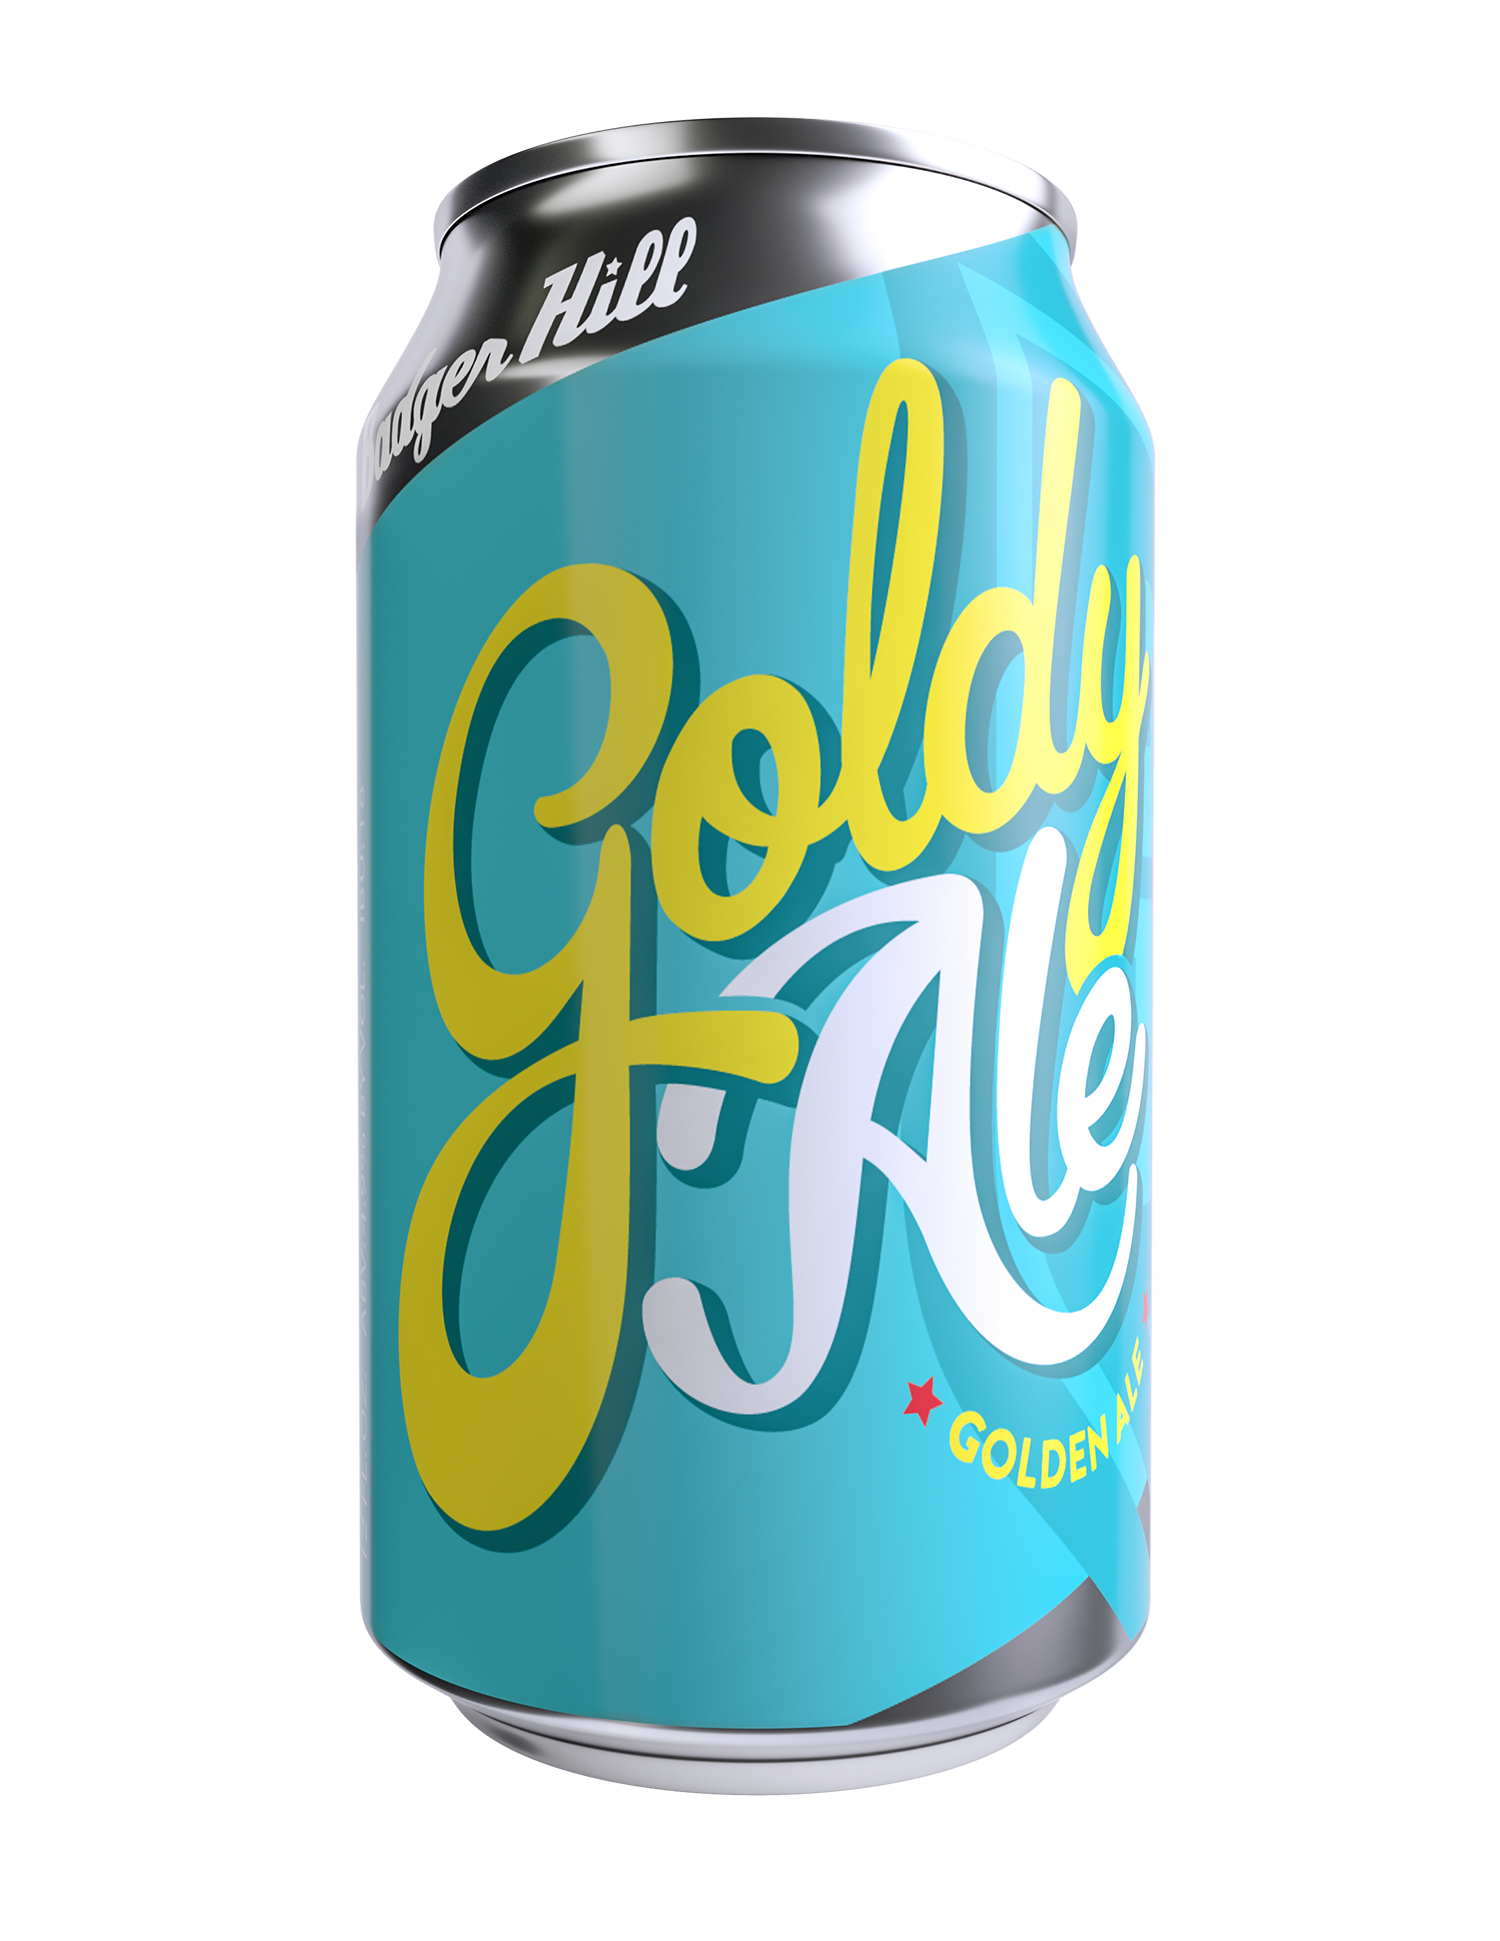 "Goldy AlE - 4.9% ABV * 18 IBUThis light and fruity Golden Ale has a touch of malt sweetness, lofty notes of lime and melon and floral overtones. It's what we call ""Have a fewable"" at a sessionable 4.9%ABV.AVAILABLE: Draft and 6-Packs"